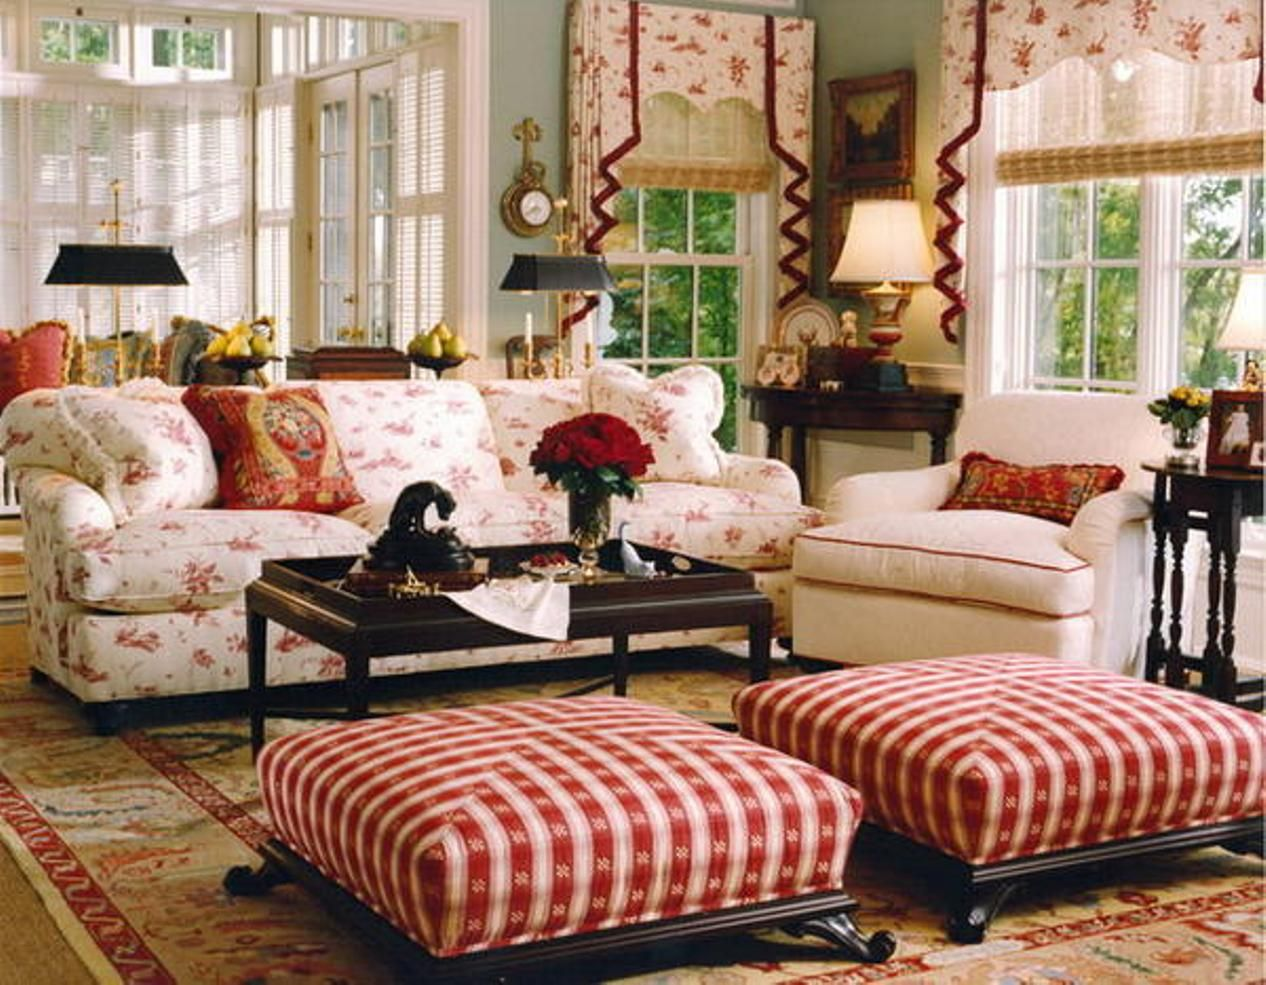 pin wood couch matching of with array chair our frame style see couches country